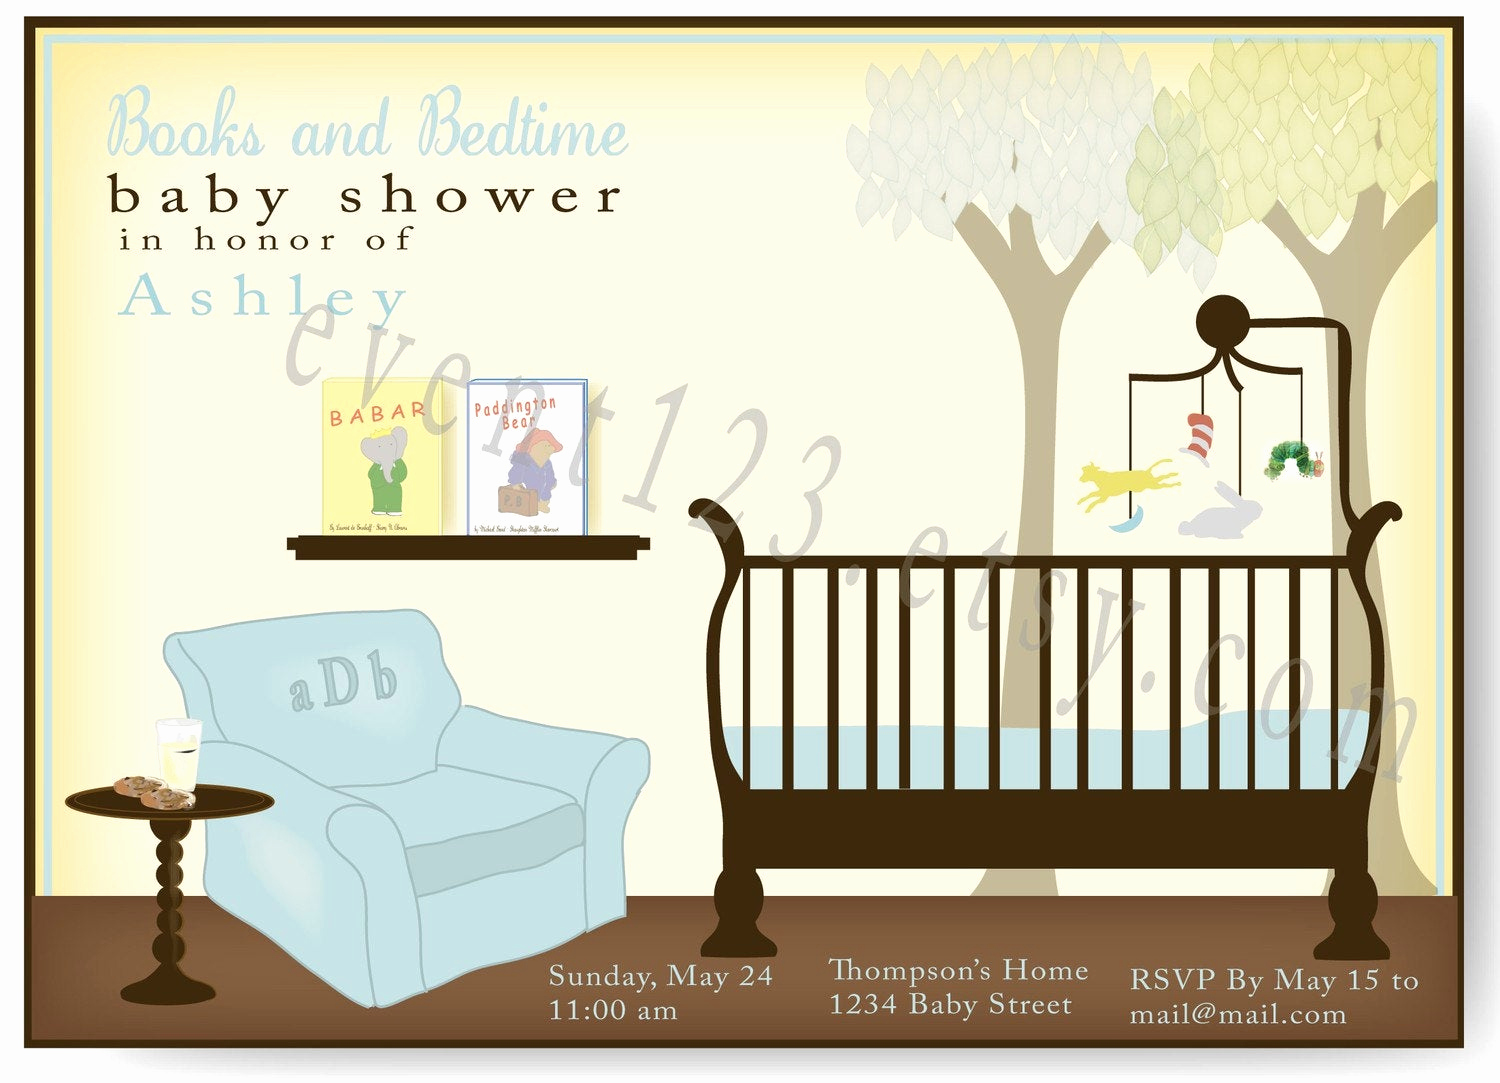 Book themed Baby Shower Invitation Awesome Book theme Invitation